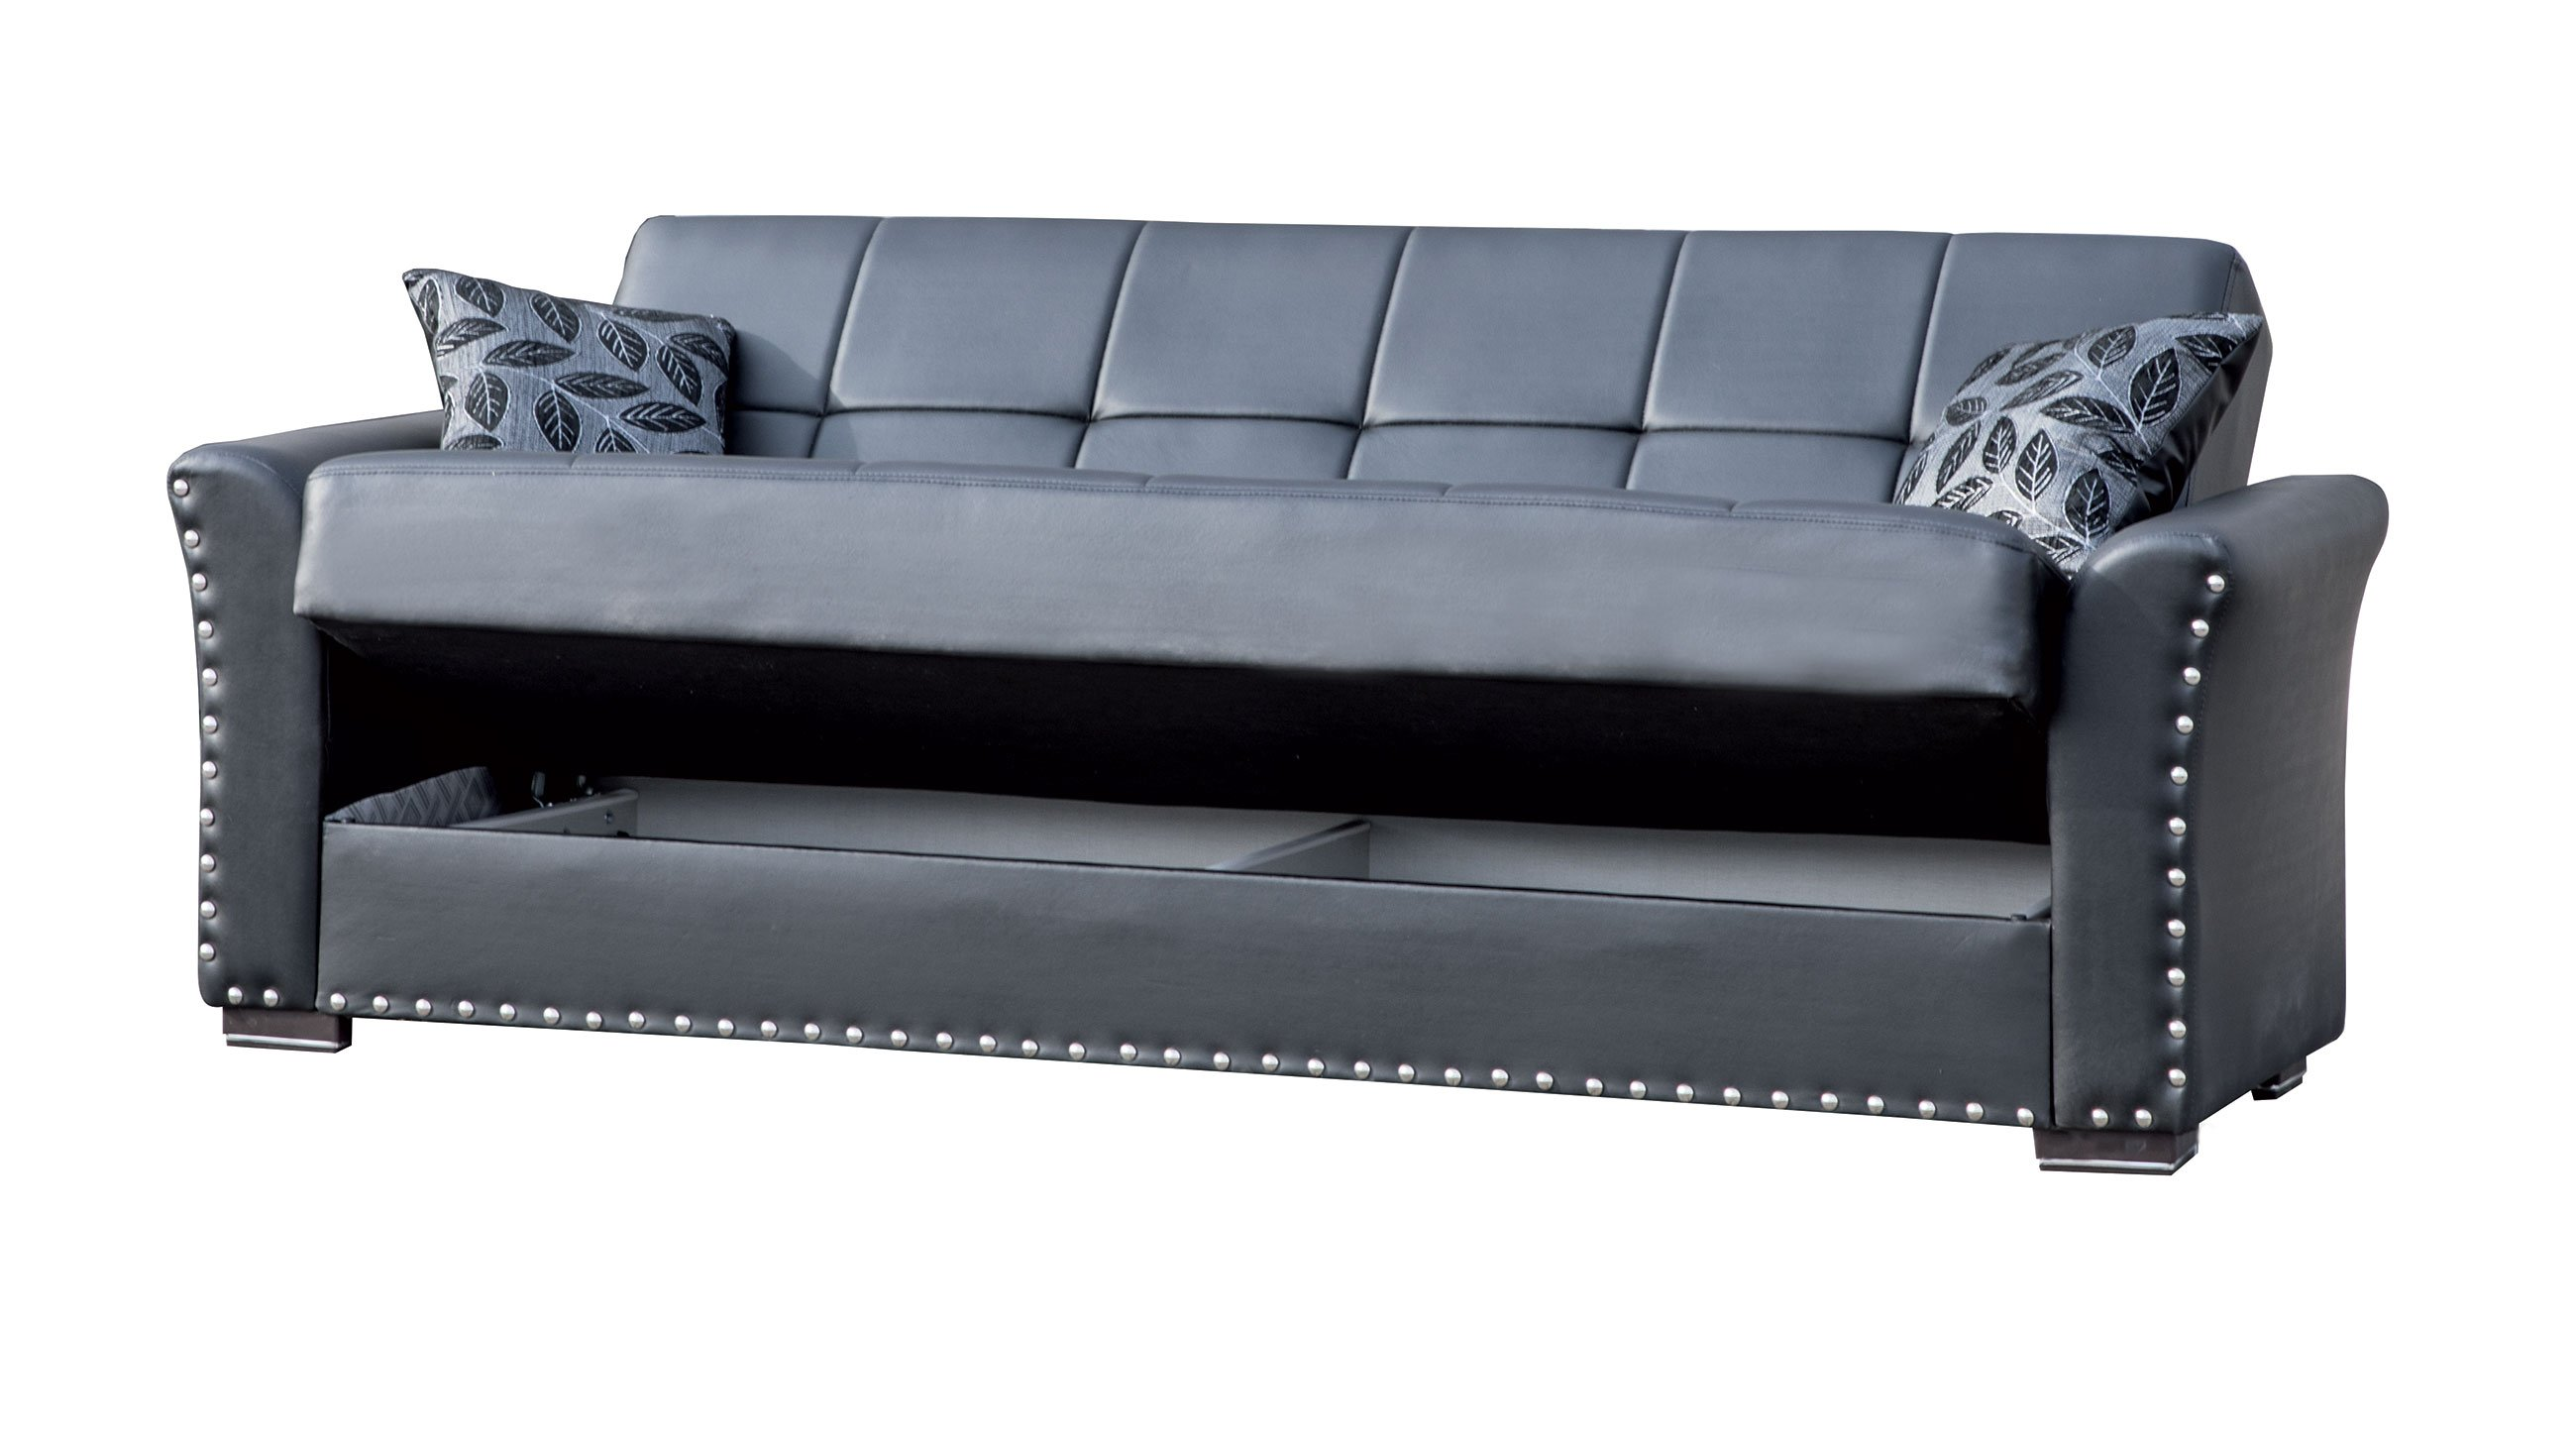 Diva Black PU Leather Convertible Sofa Bed by Casamode